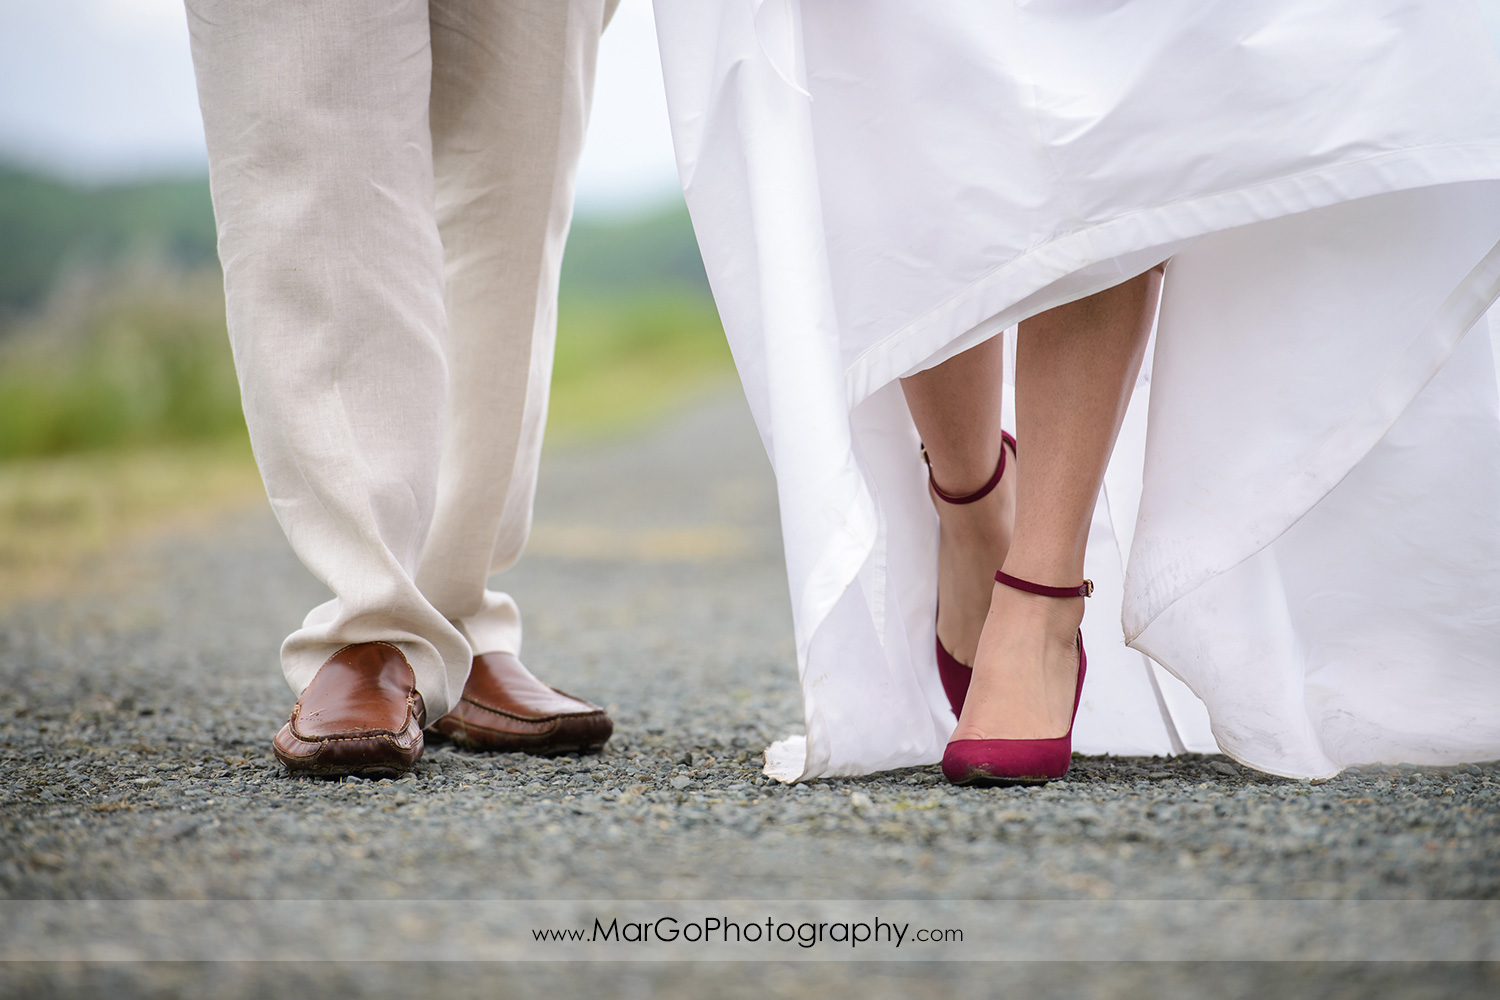 shoes of bride and groom at Martinez Regional Shoreline